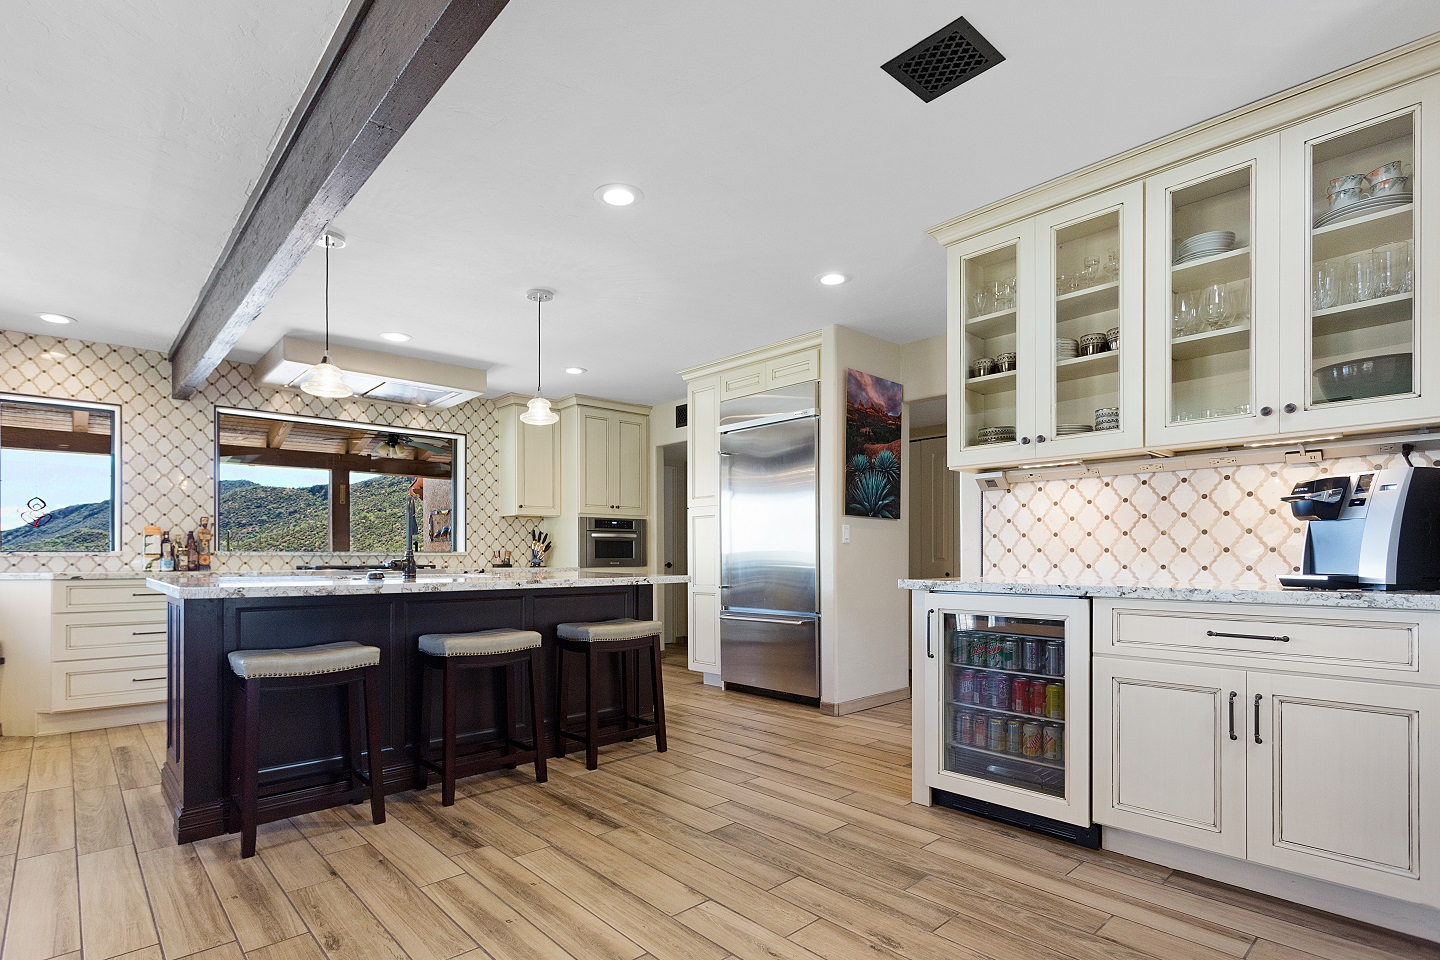 Collaboration with Kitchen Designer: Laura Wallace of Southwest Kitchen & Bath, and Photography by KC Creative Design Photography